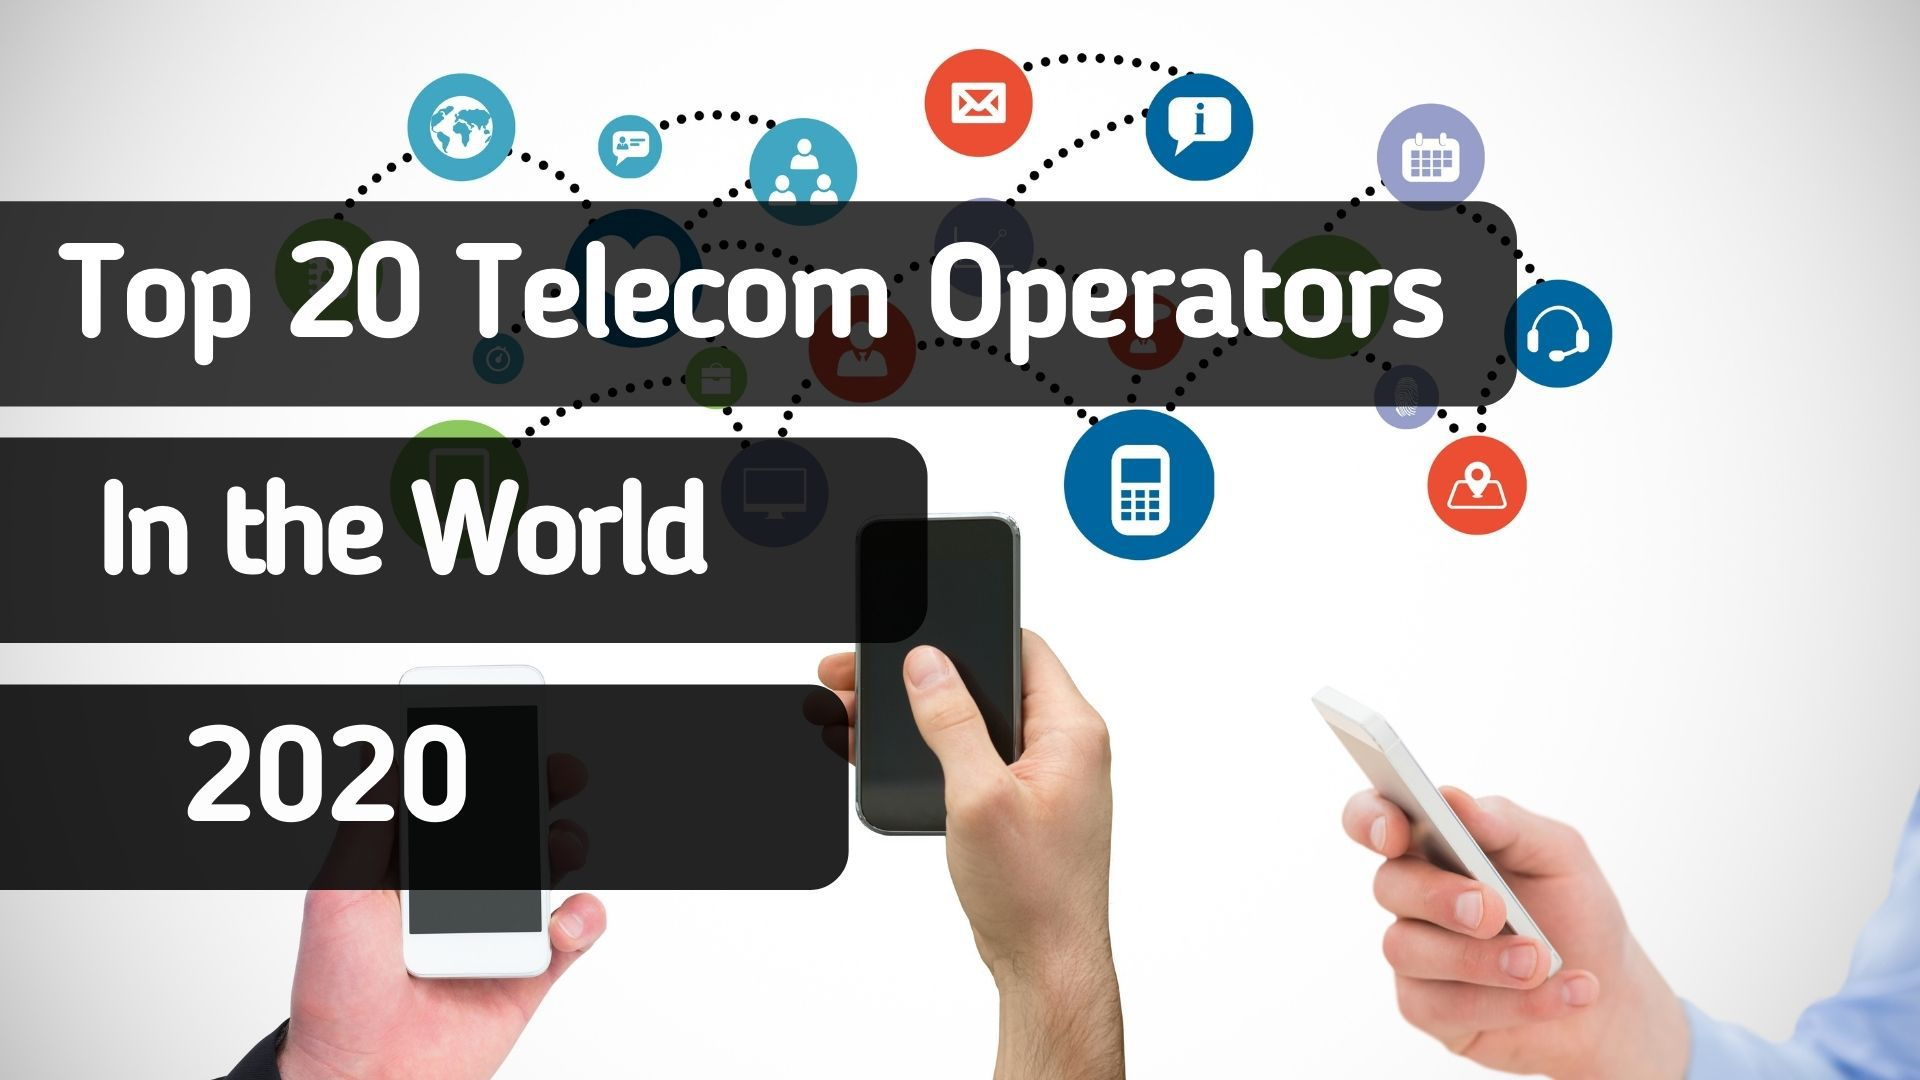 Top 20 Telecom Operators in the World in 2020